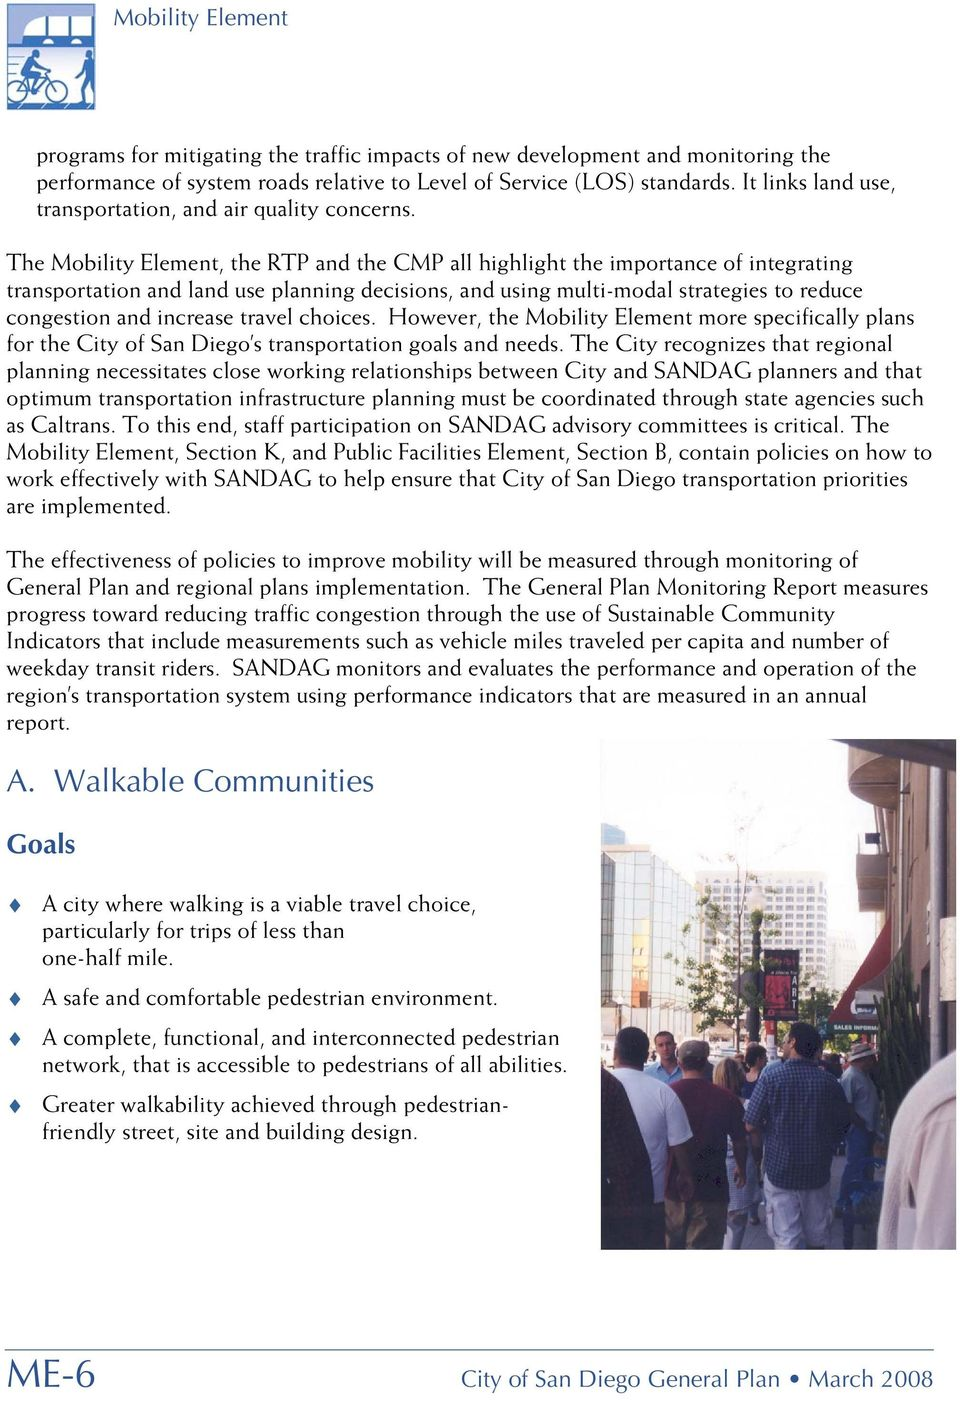 The Mobility Element, the RTP and the CMP all highlight the importance of integrating transportation and land use planning decisions, and using multi-modal strategies to reduce congestion and